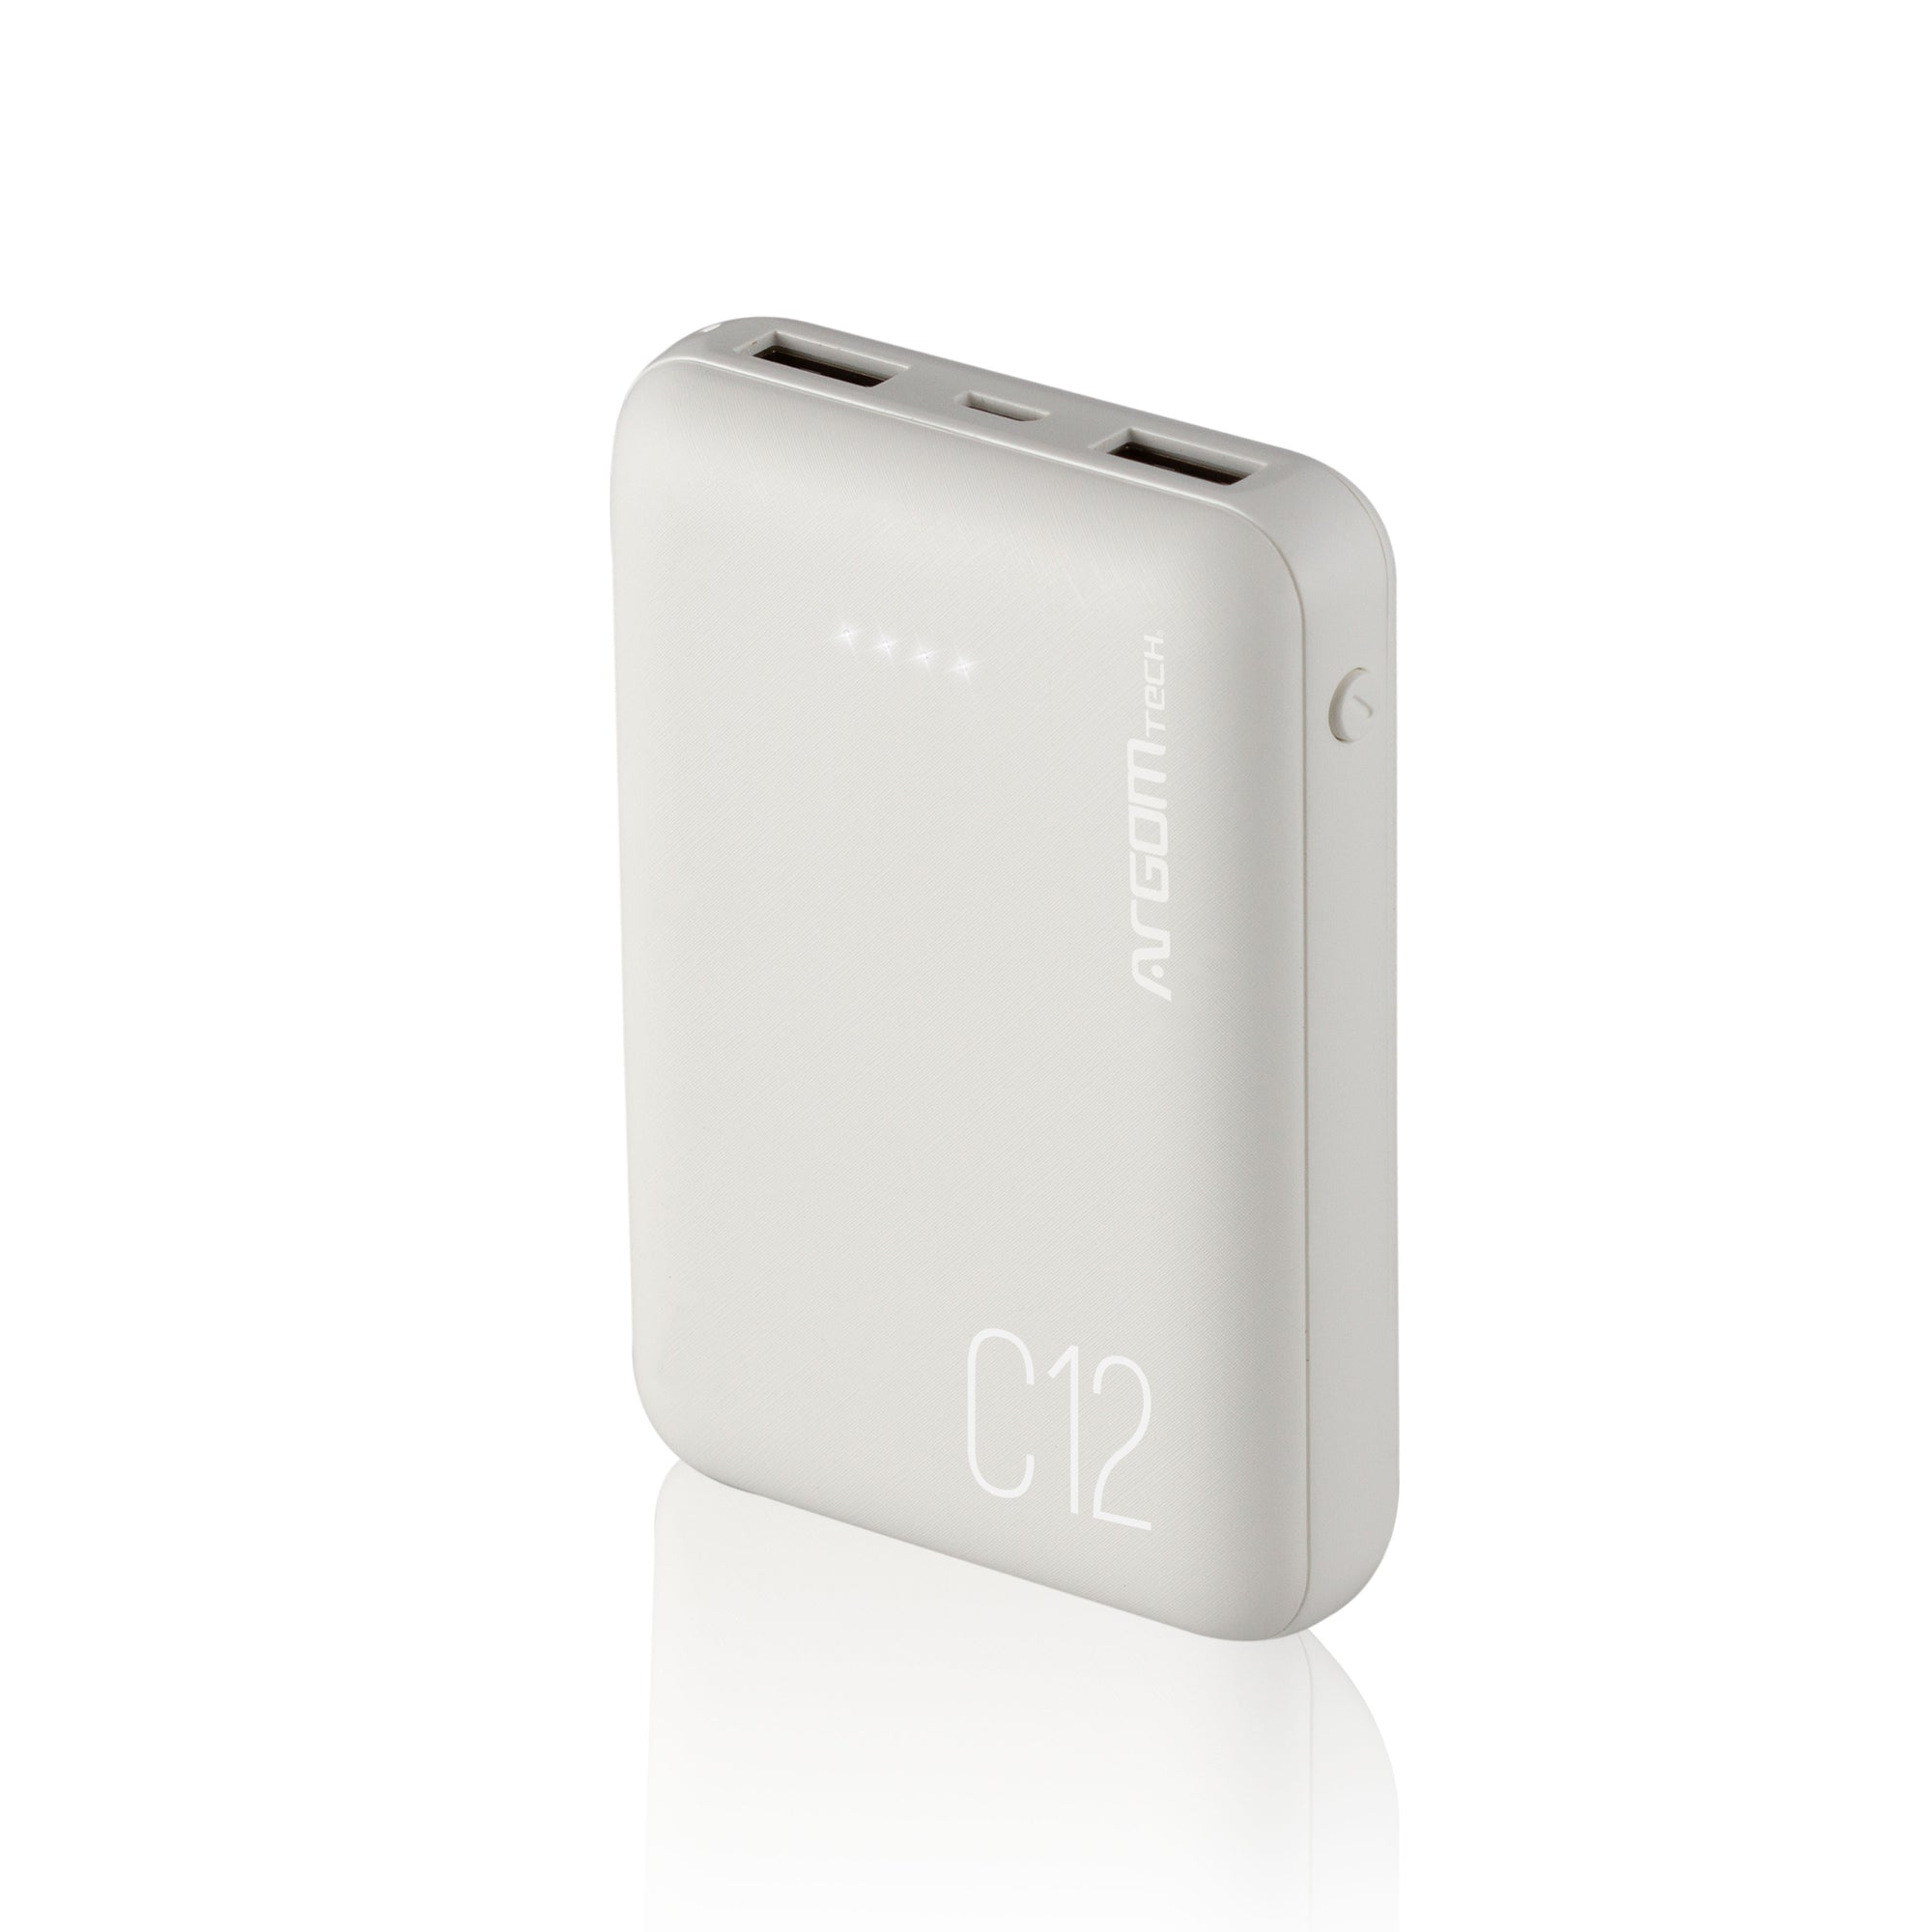 Power Bank C12 12000mAh